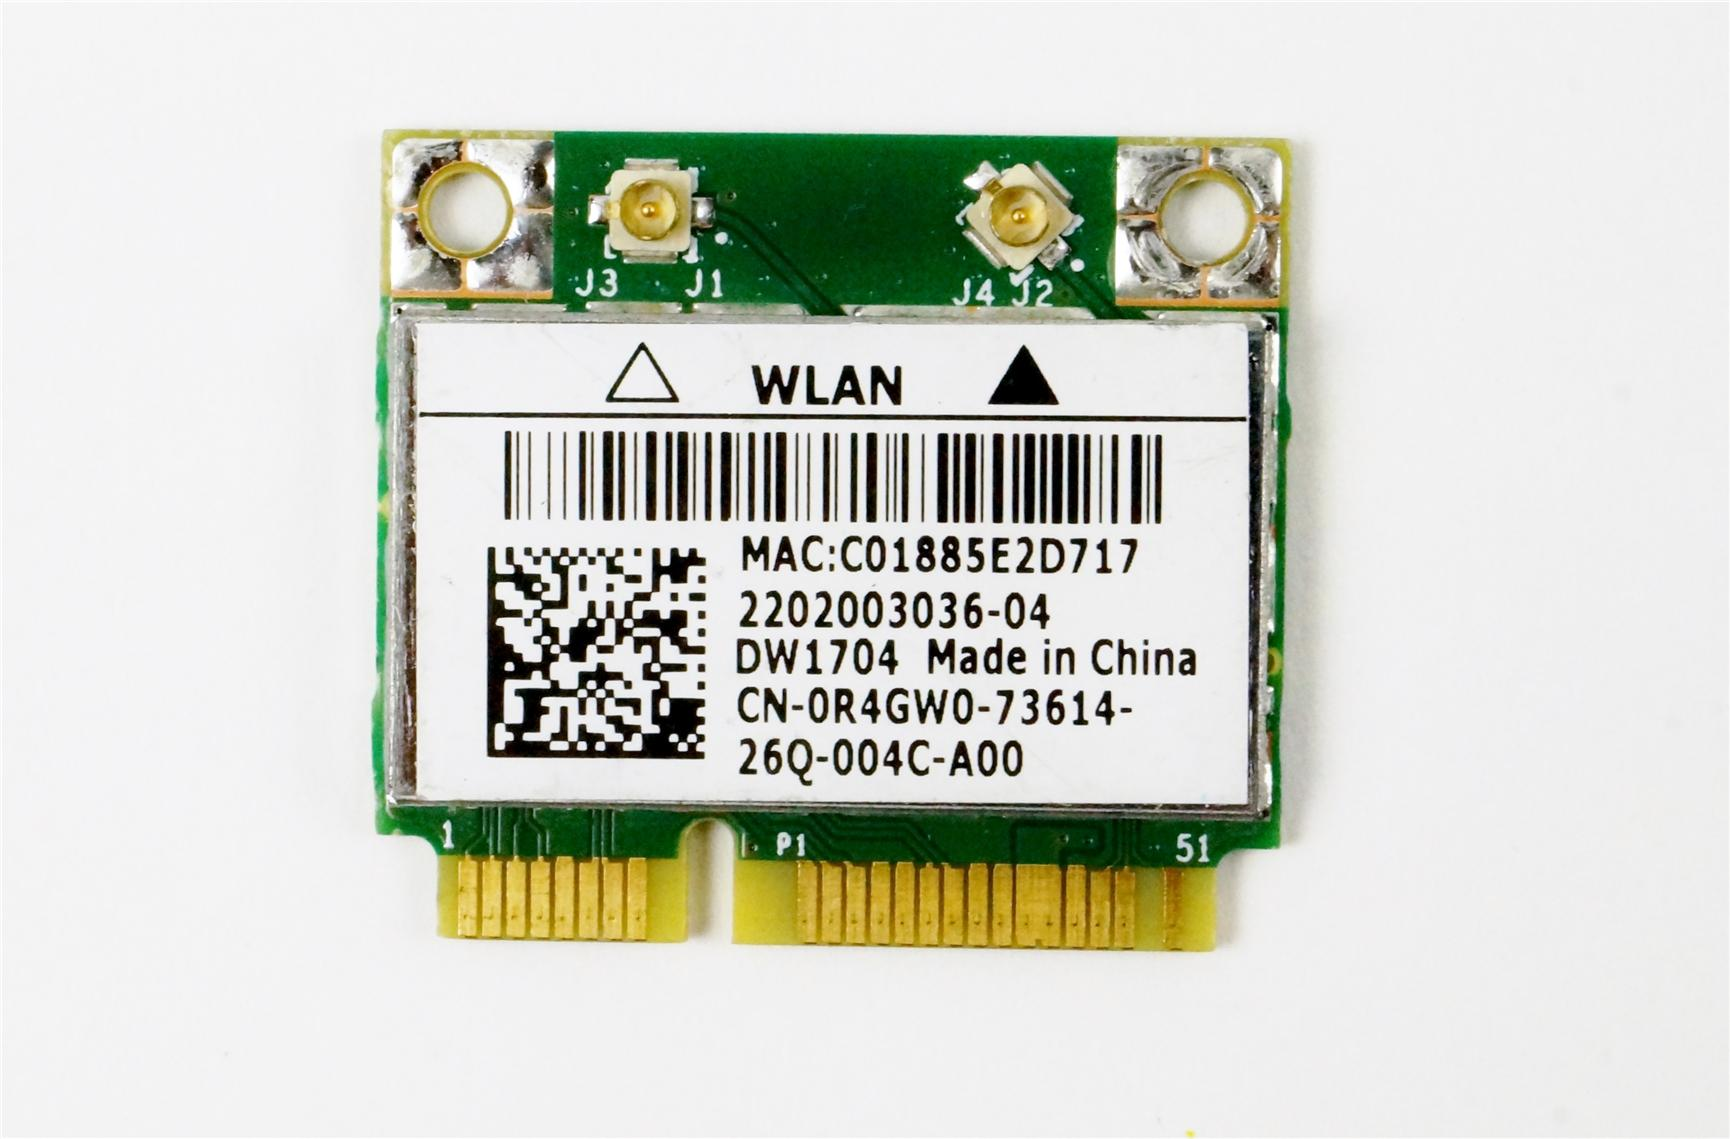 Broadcom BCM943142HM DW1704 Wireless WIFI+Bluetooth WLAN Card